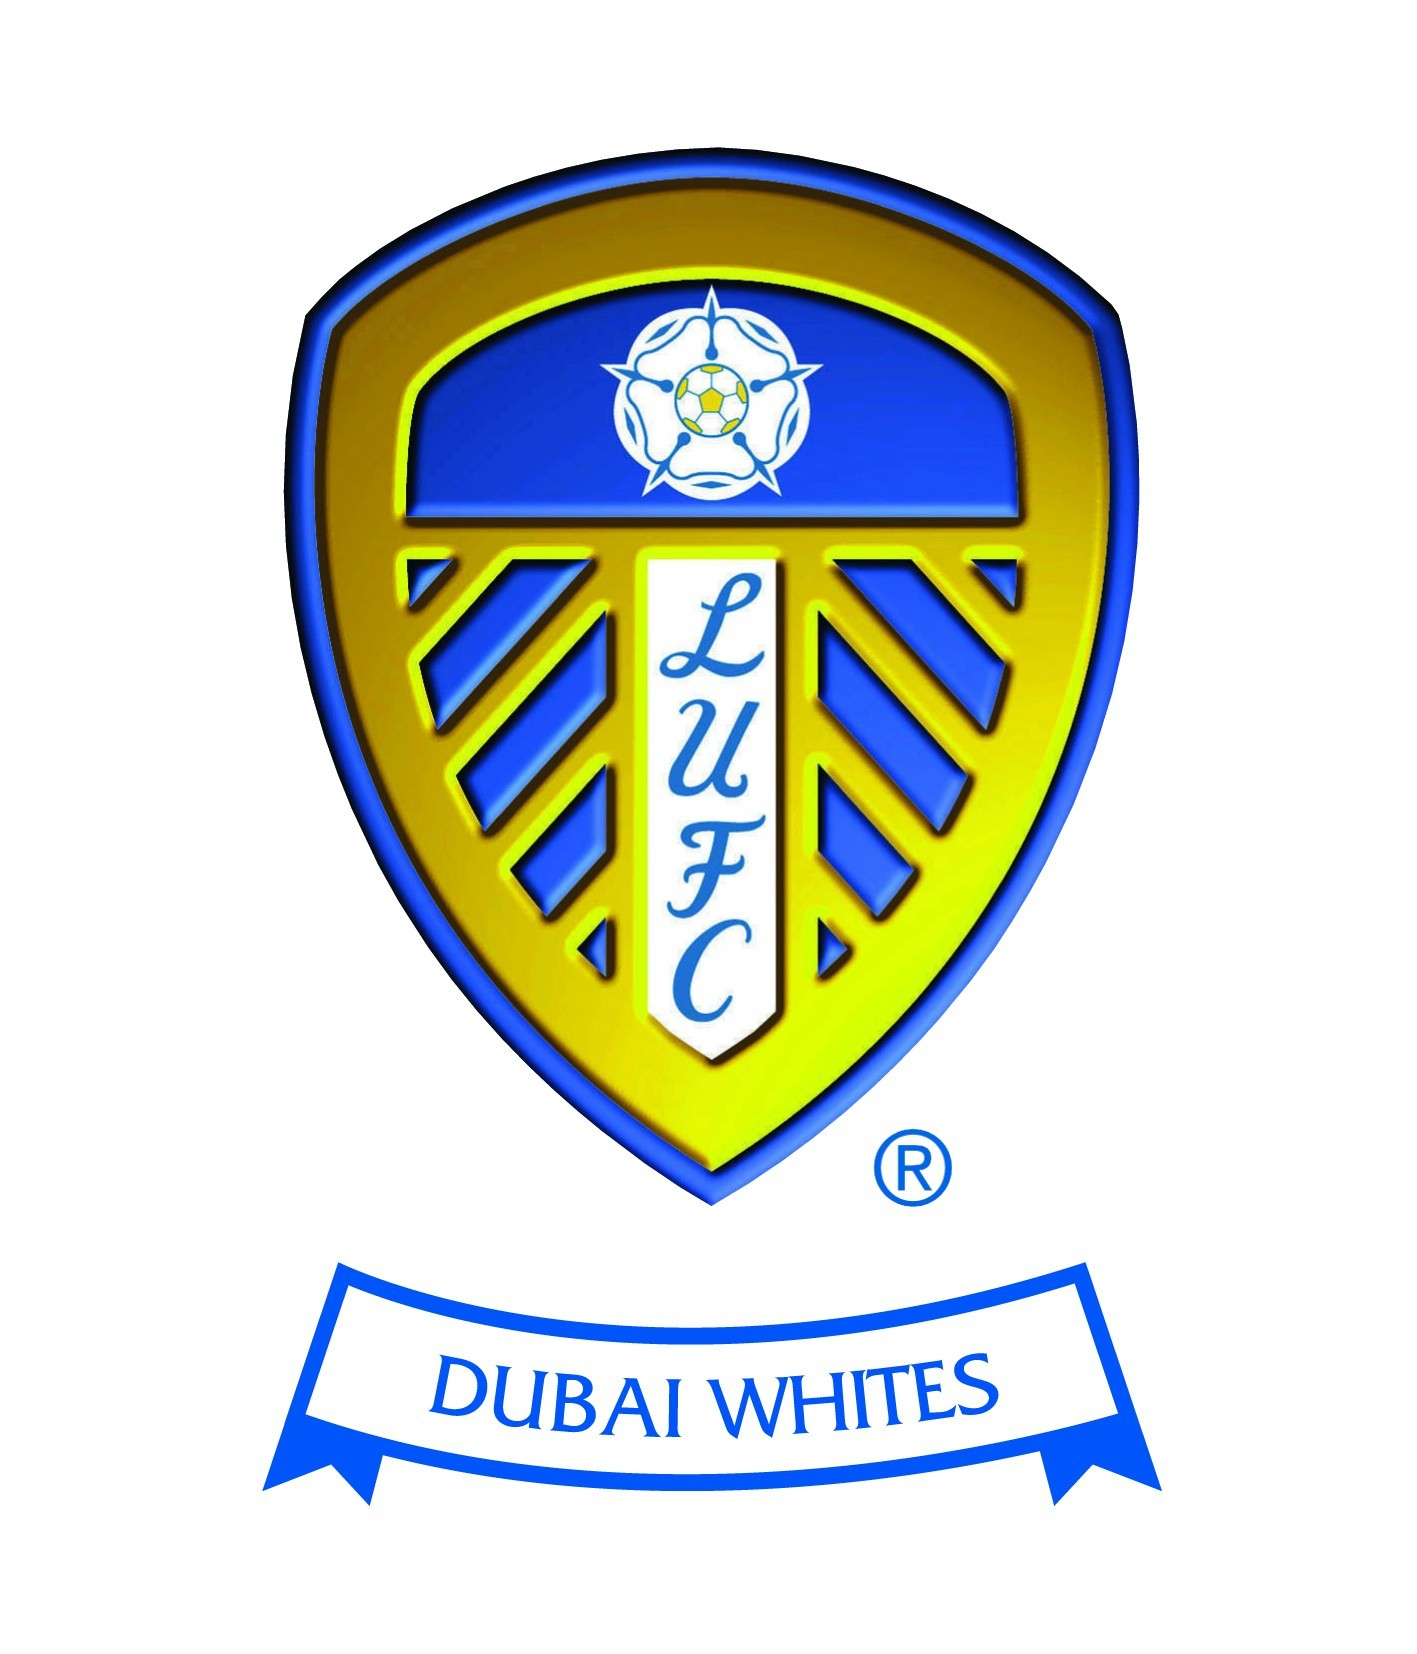 The Dubai Whites Supporters Group